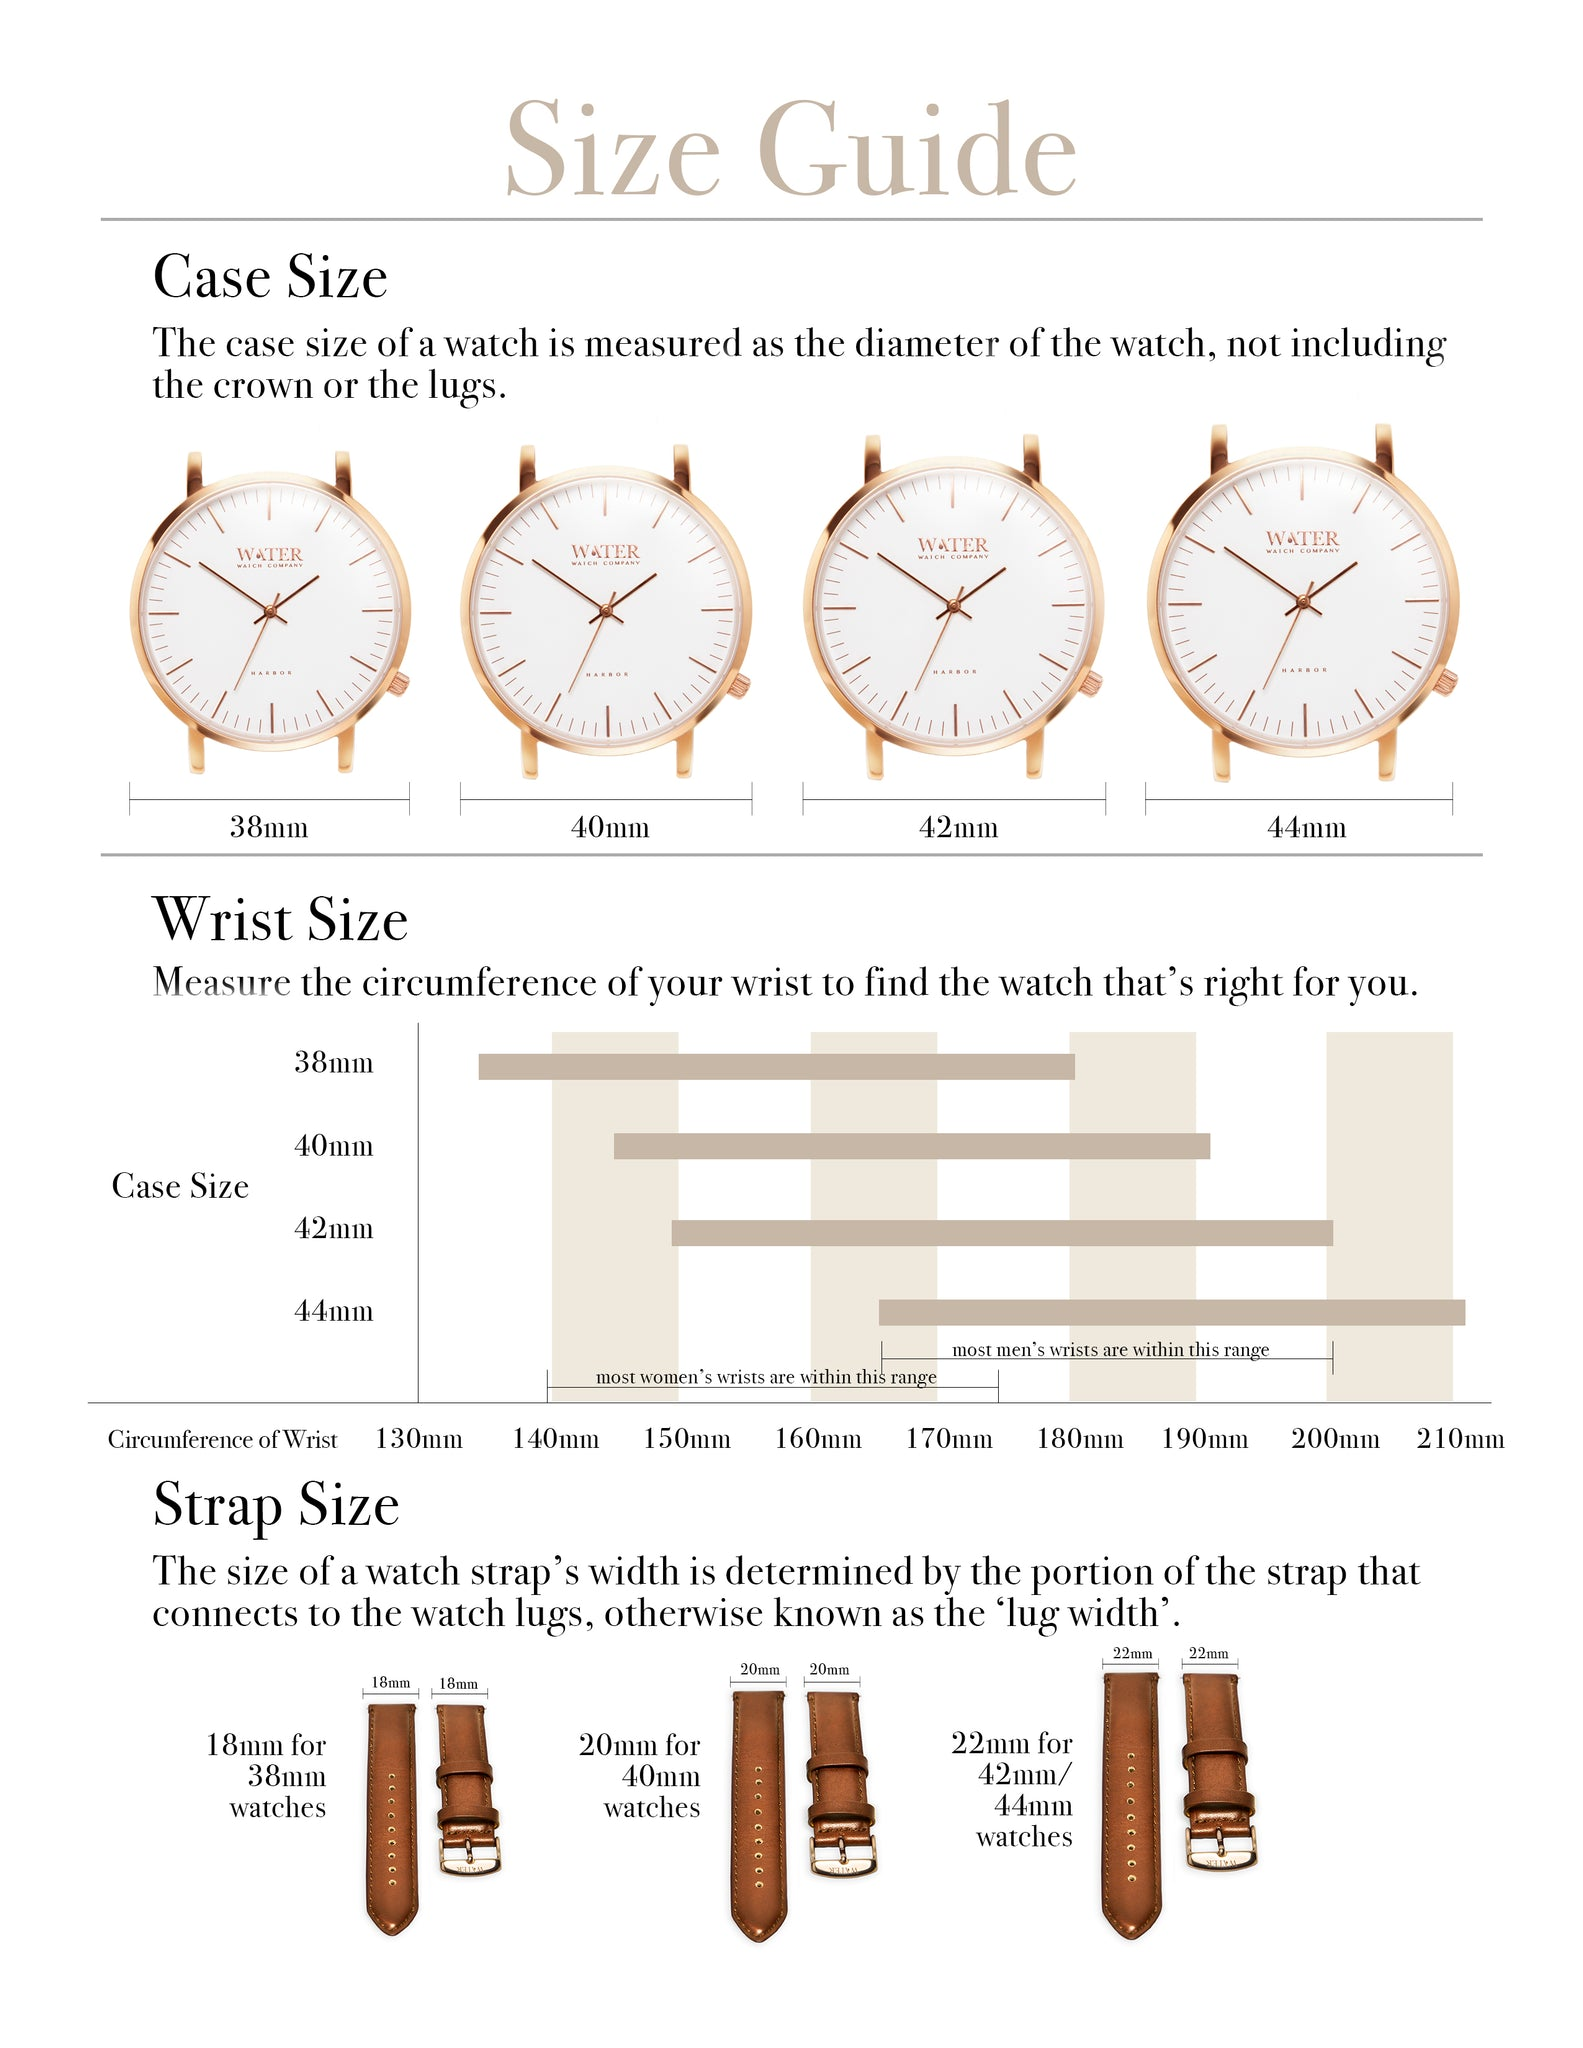 Water Watch Company Size Guide